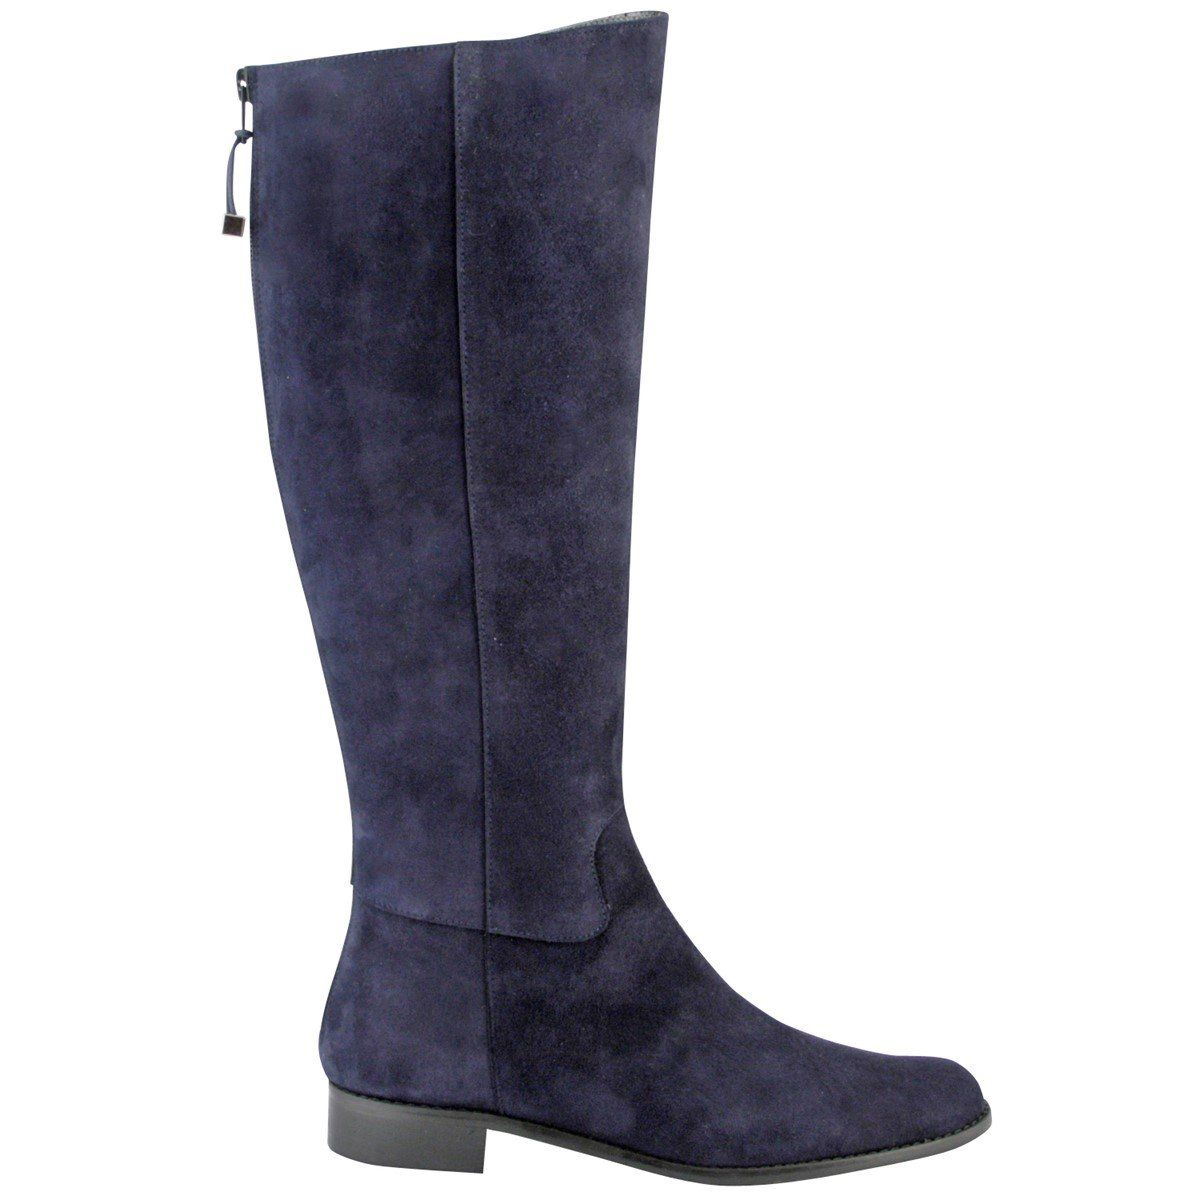 Exclusif Bleu Kim Paris Bottes Kim Bleu B073XJ8TJC Marine 69d6572 - fast-weightloss-diet.space